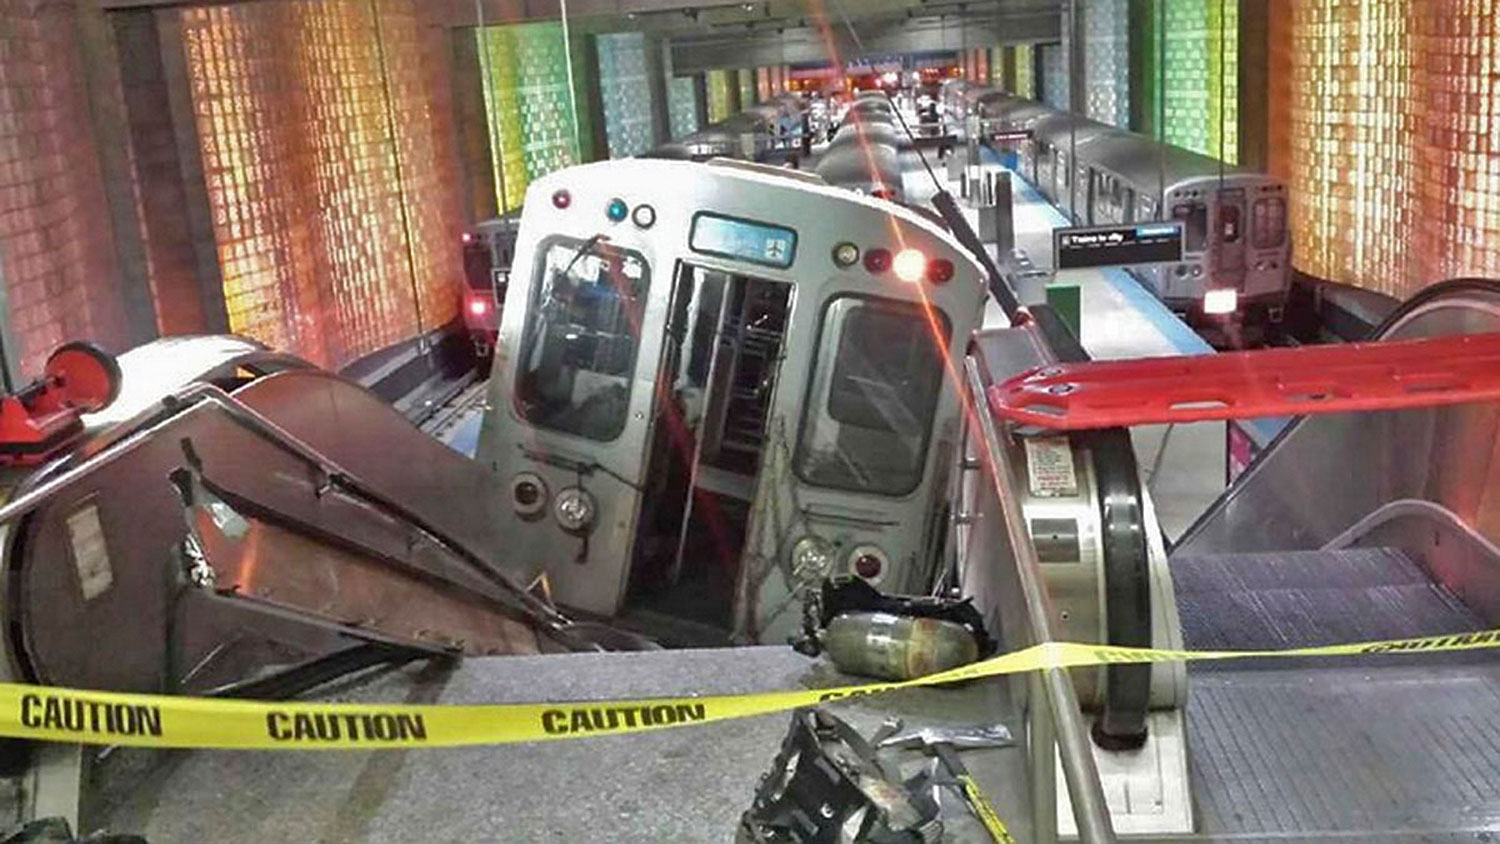 A derailed commuter train is shown resting on an escalator at O'Hare international airport in Chicago March 24, 2014.